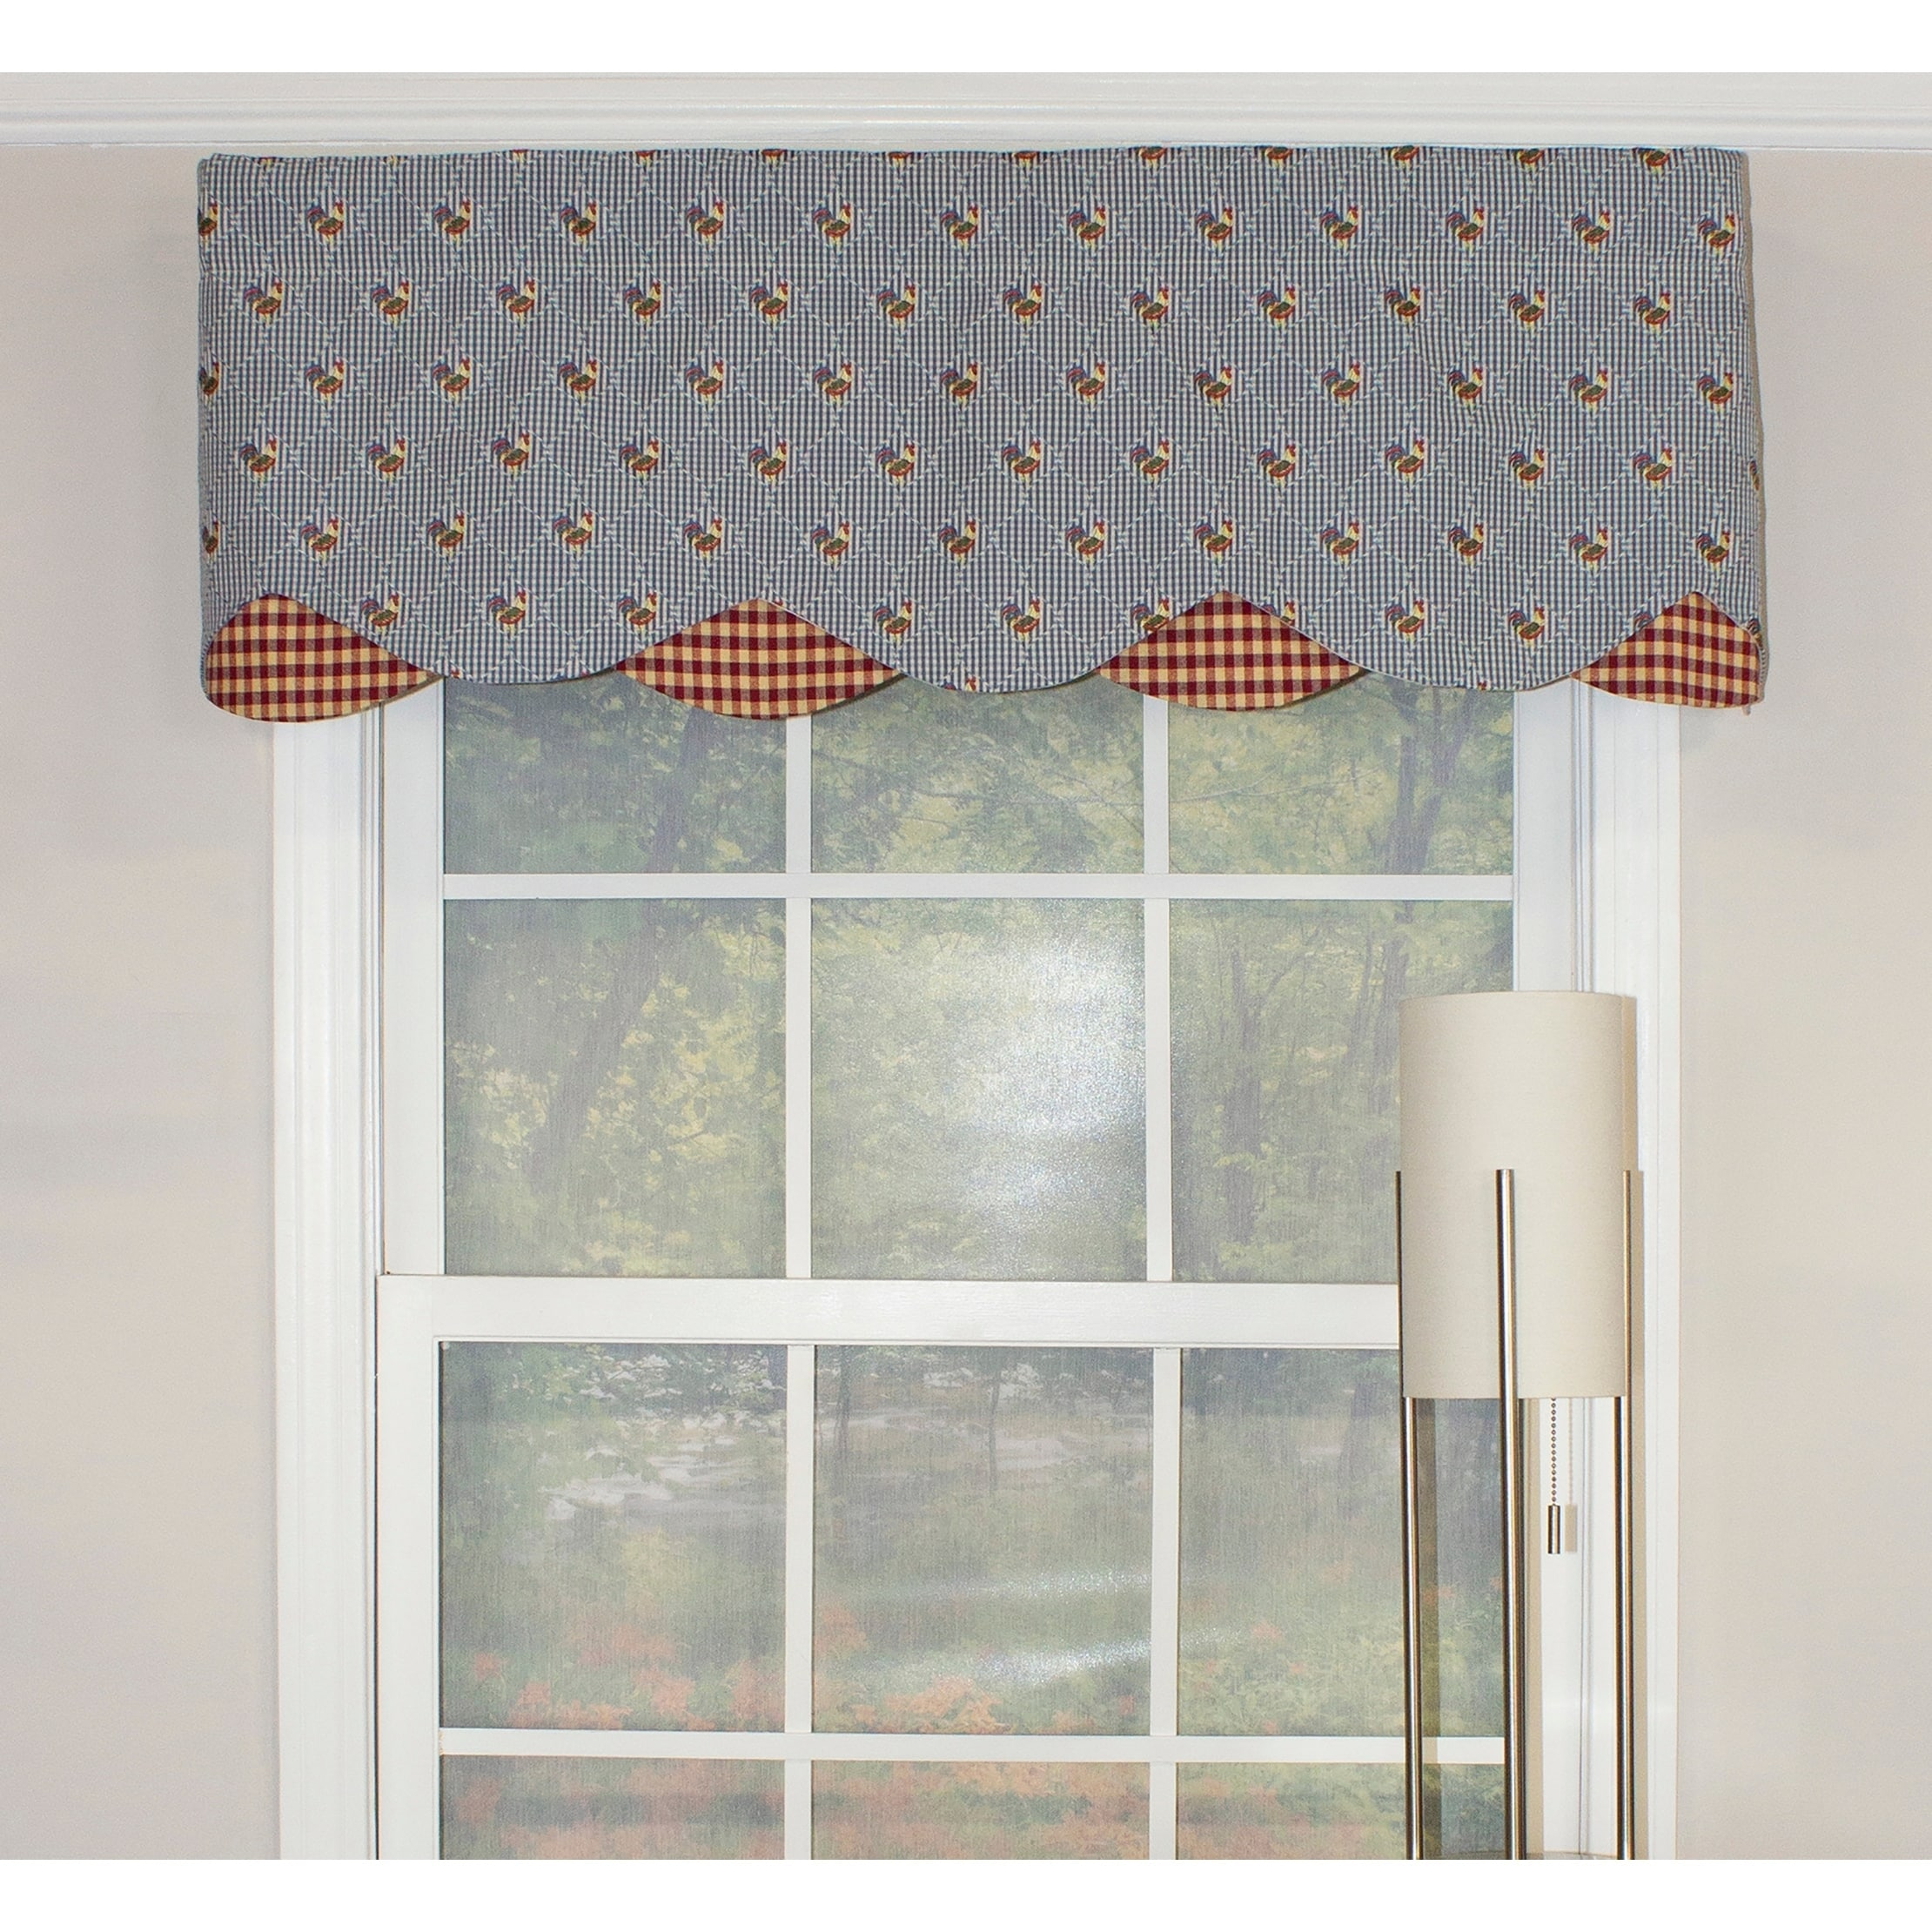 Rlf Home Henny Penny Blue Petticoat Window Valance at Sears.com